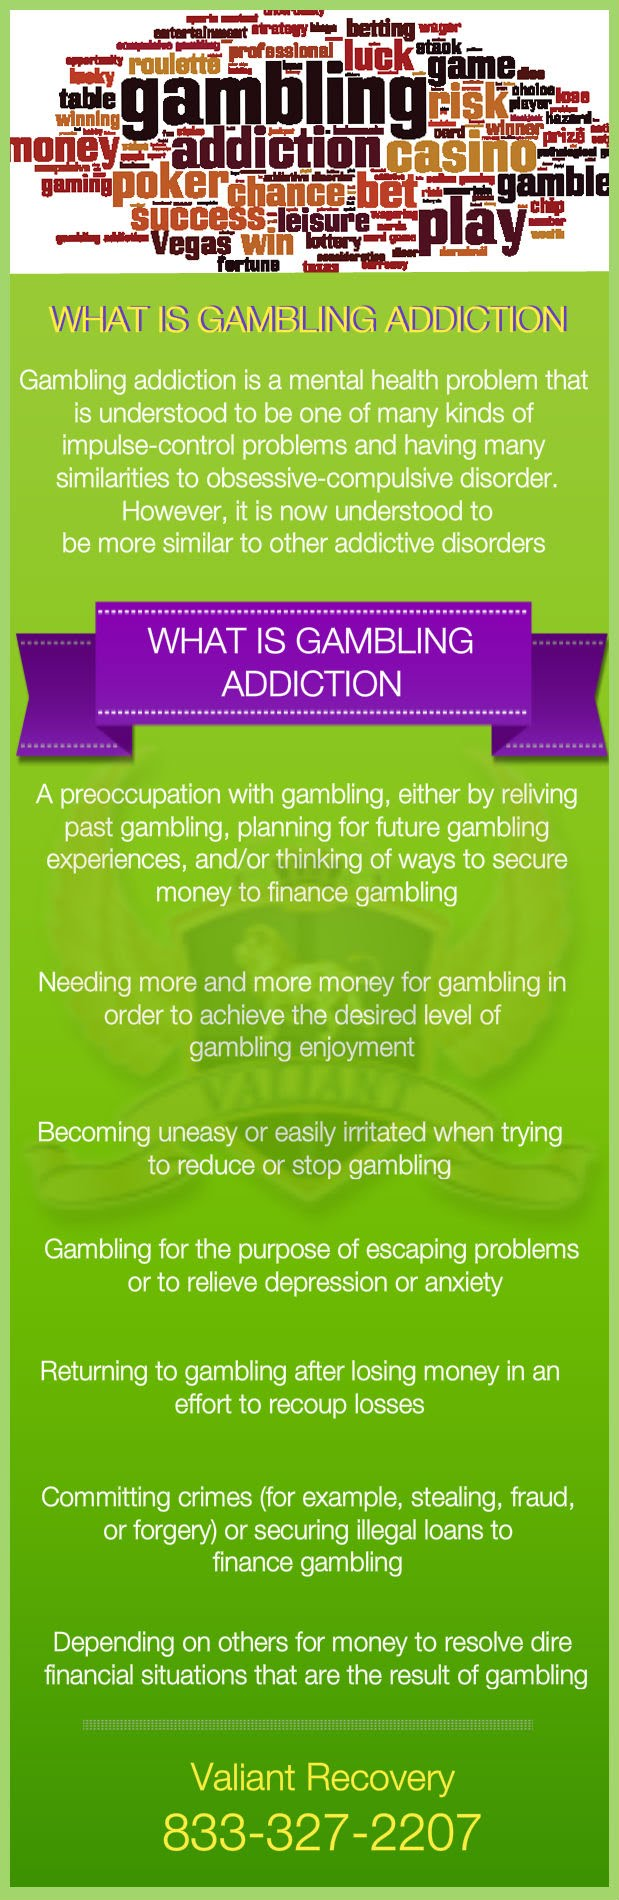 What is Gambling Addiction? Infographic